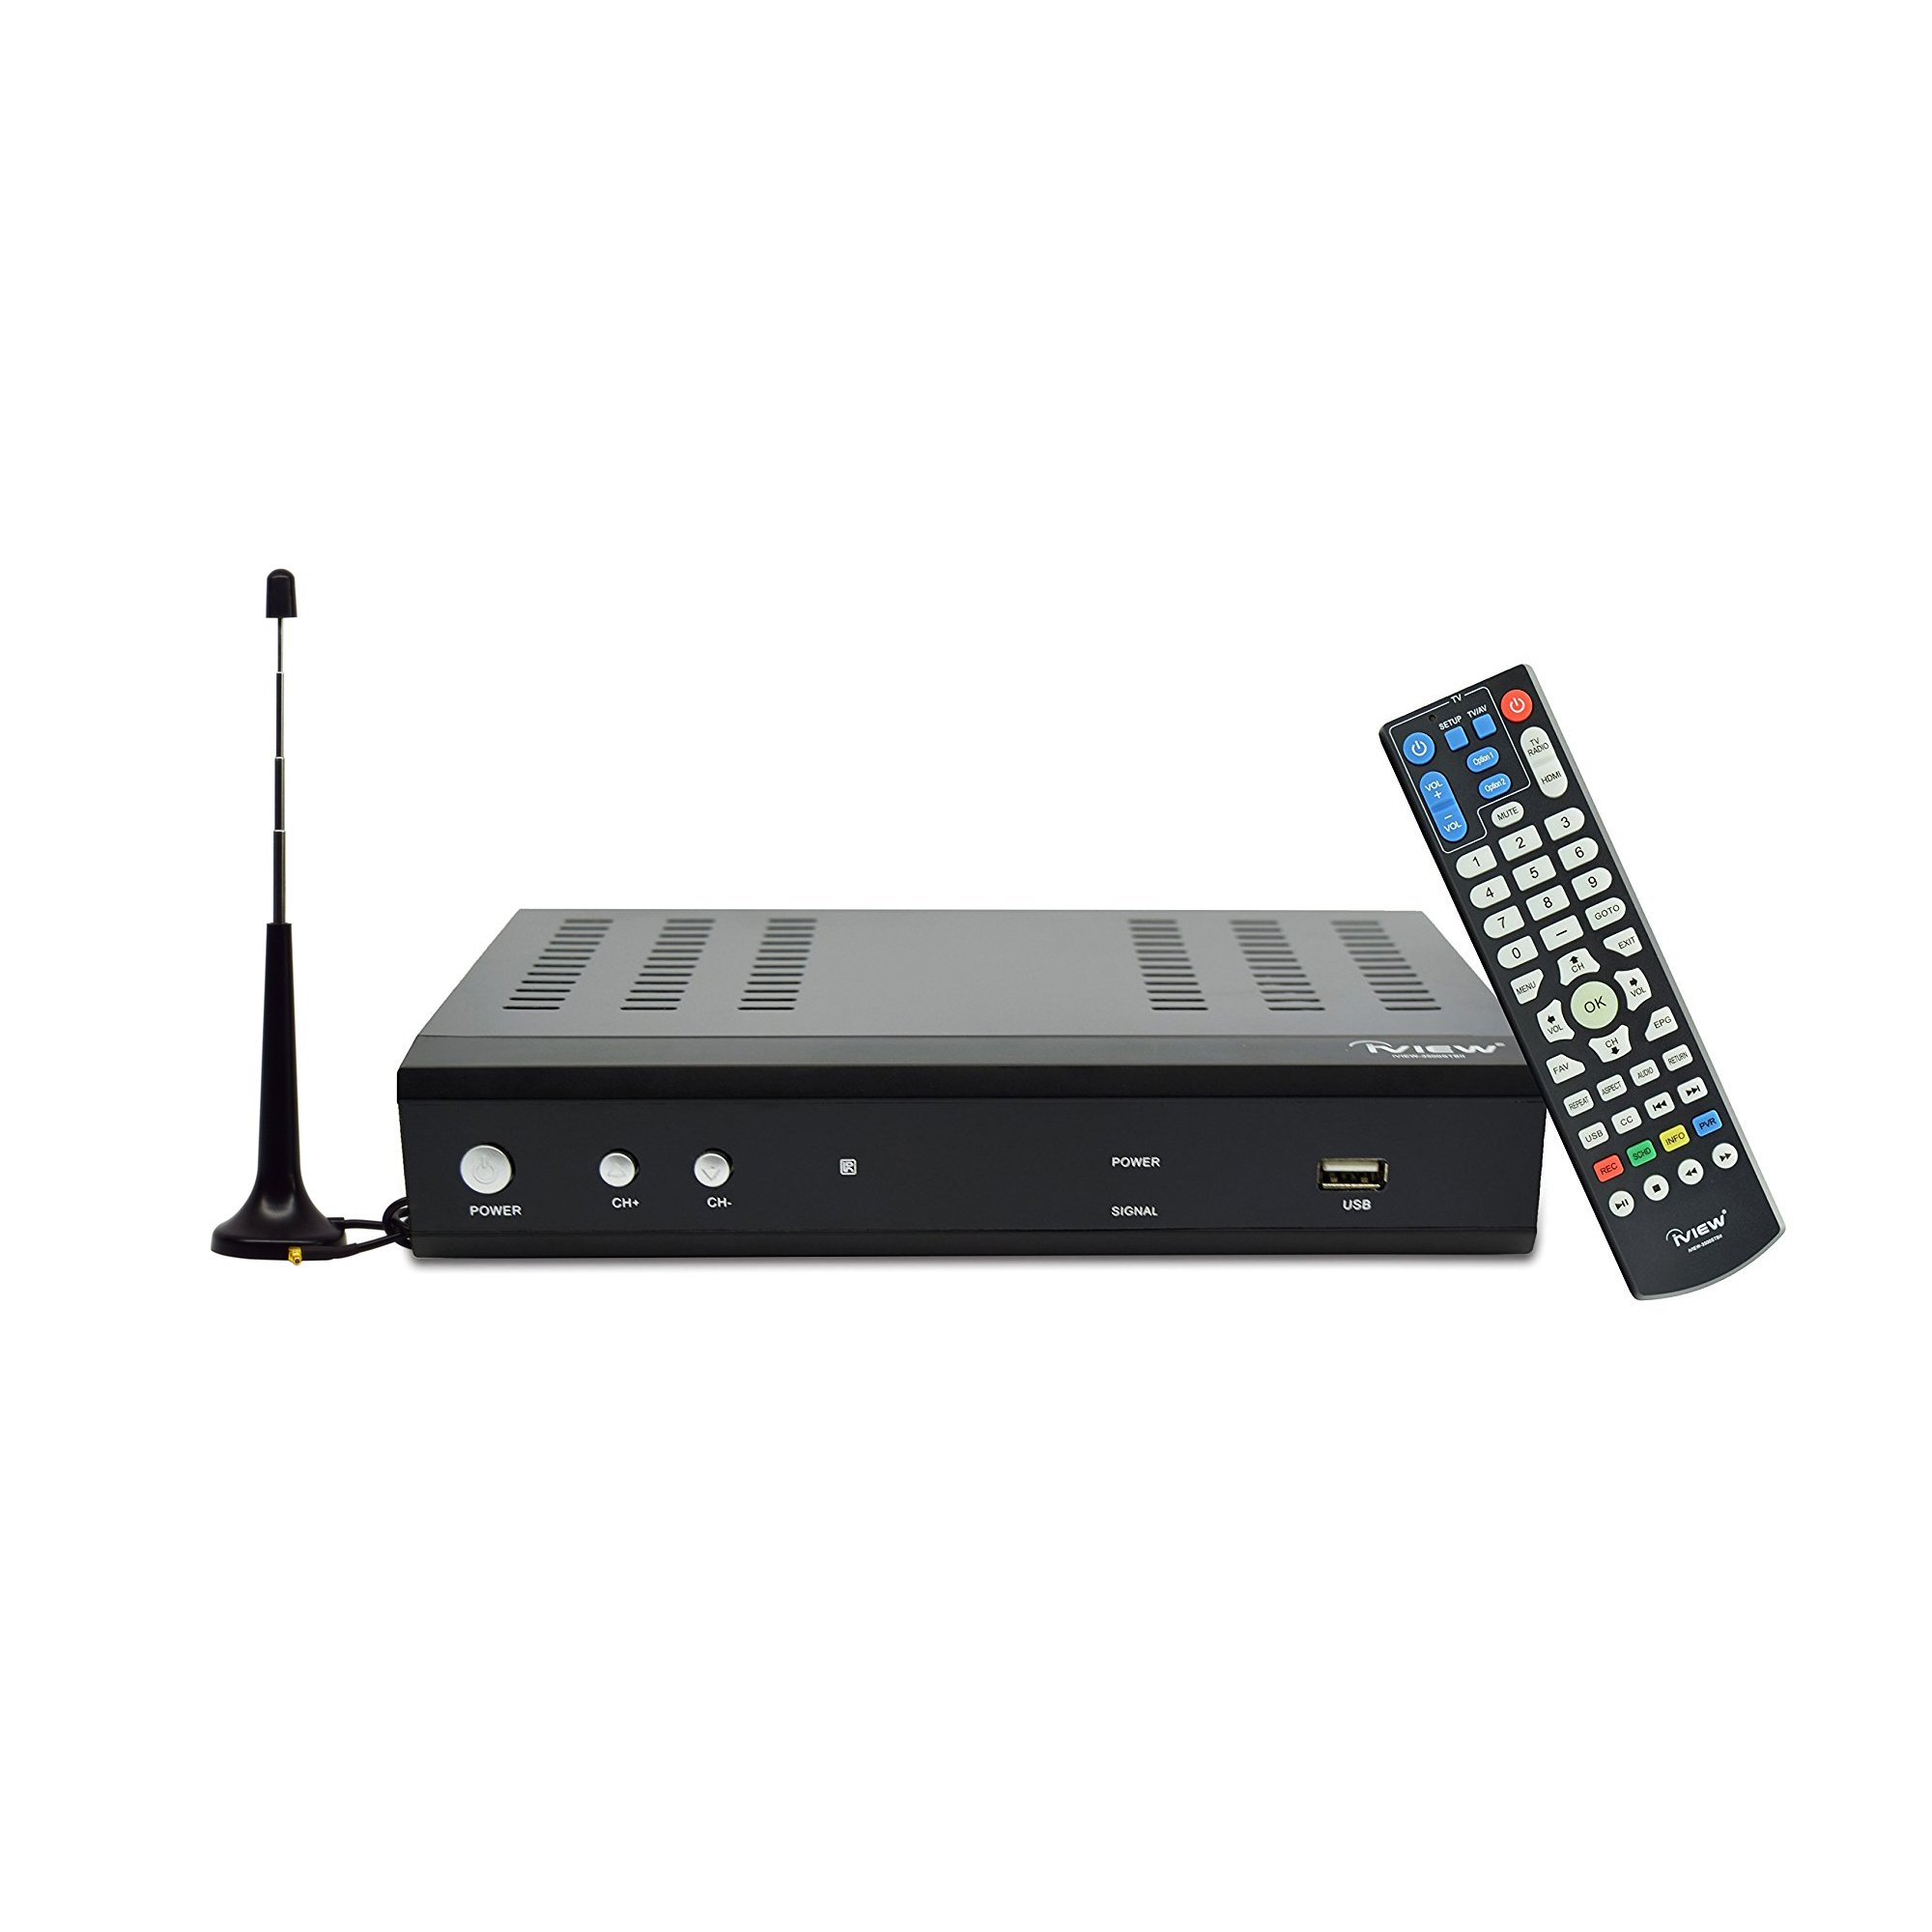 iView Premium Digital Converter Box with Recording, Analog to Digital, ATSC Tuner, QAM Compatible, Channel 3/4, HDMI, USB, Free Antenna Included by IVIEW